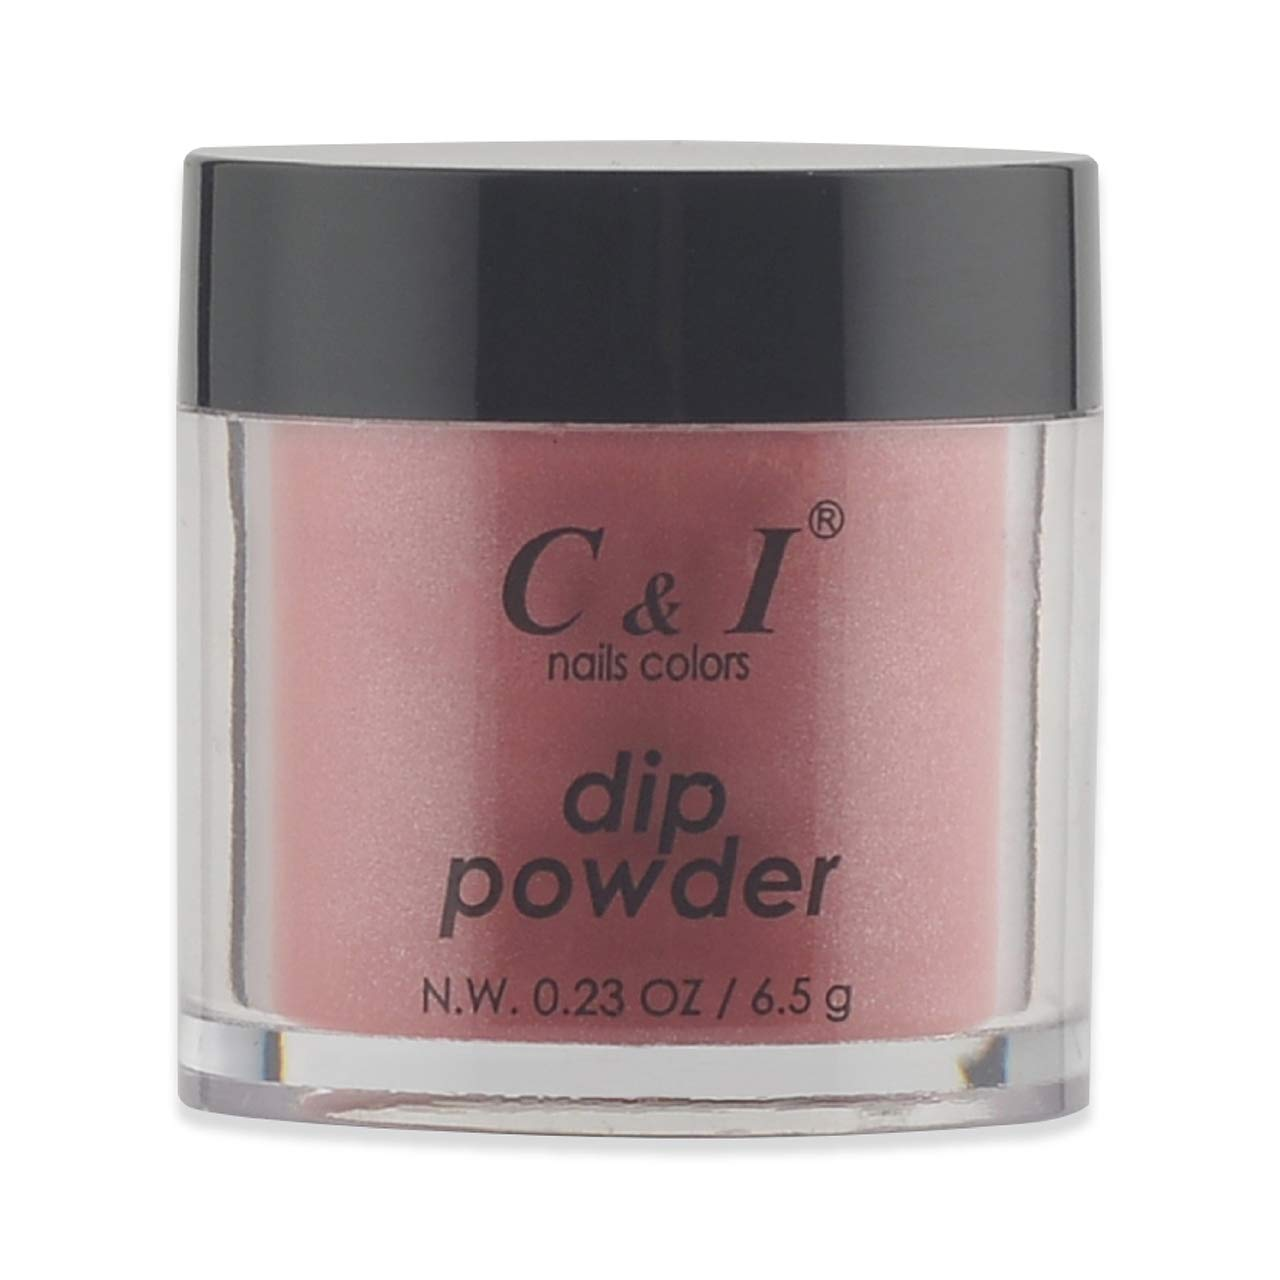 C & I Dipping Powder, Nail Colors, Gel Effect, Color # 44 Watermelon, 0.23 oz, 6.5 g, Red Color System (4 pcs)